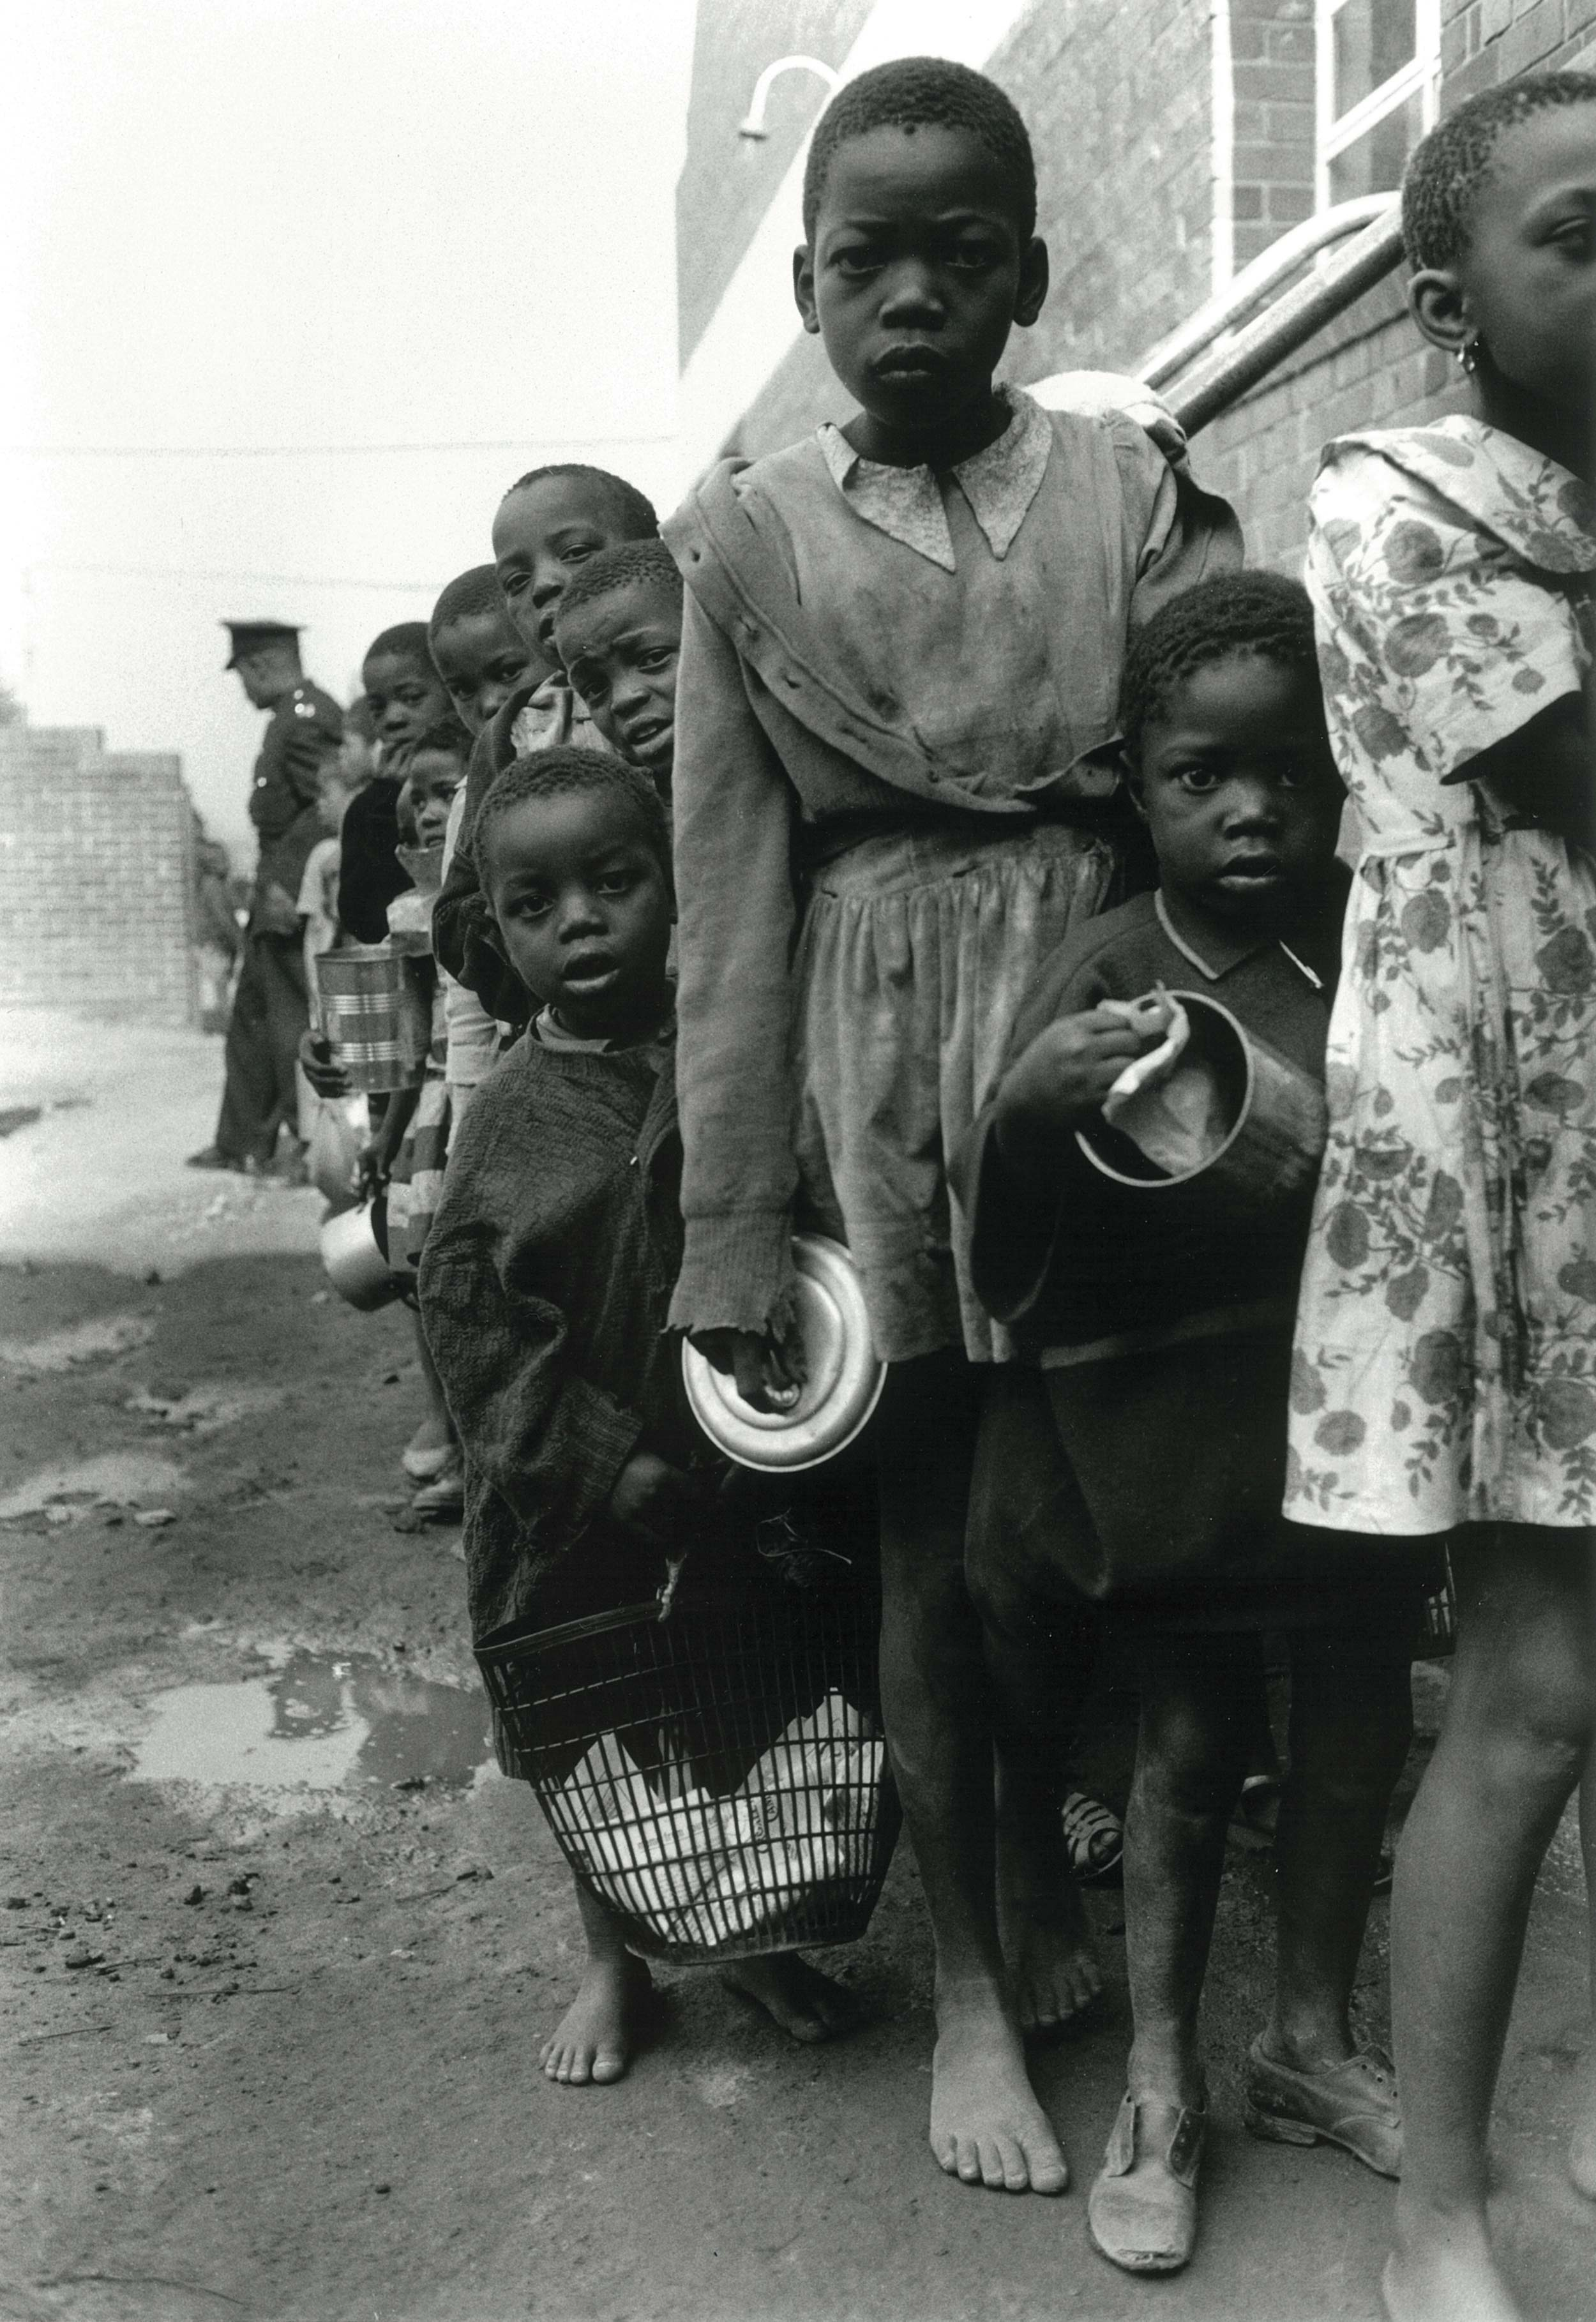 1962 – South African Children's feeding scheme, Orlando township, The scheme was a charity sponsored by wealthy white women.   Courtesy of the Estate of John Goldblatt